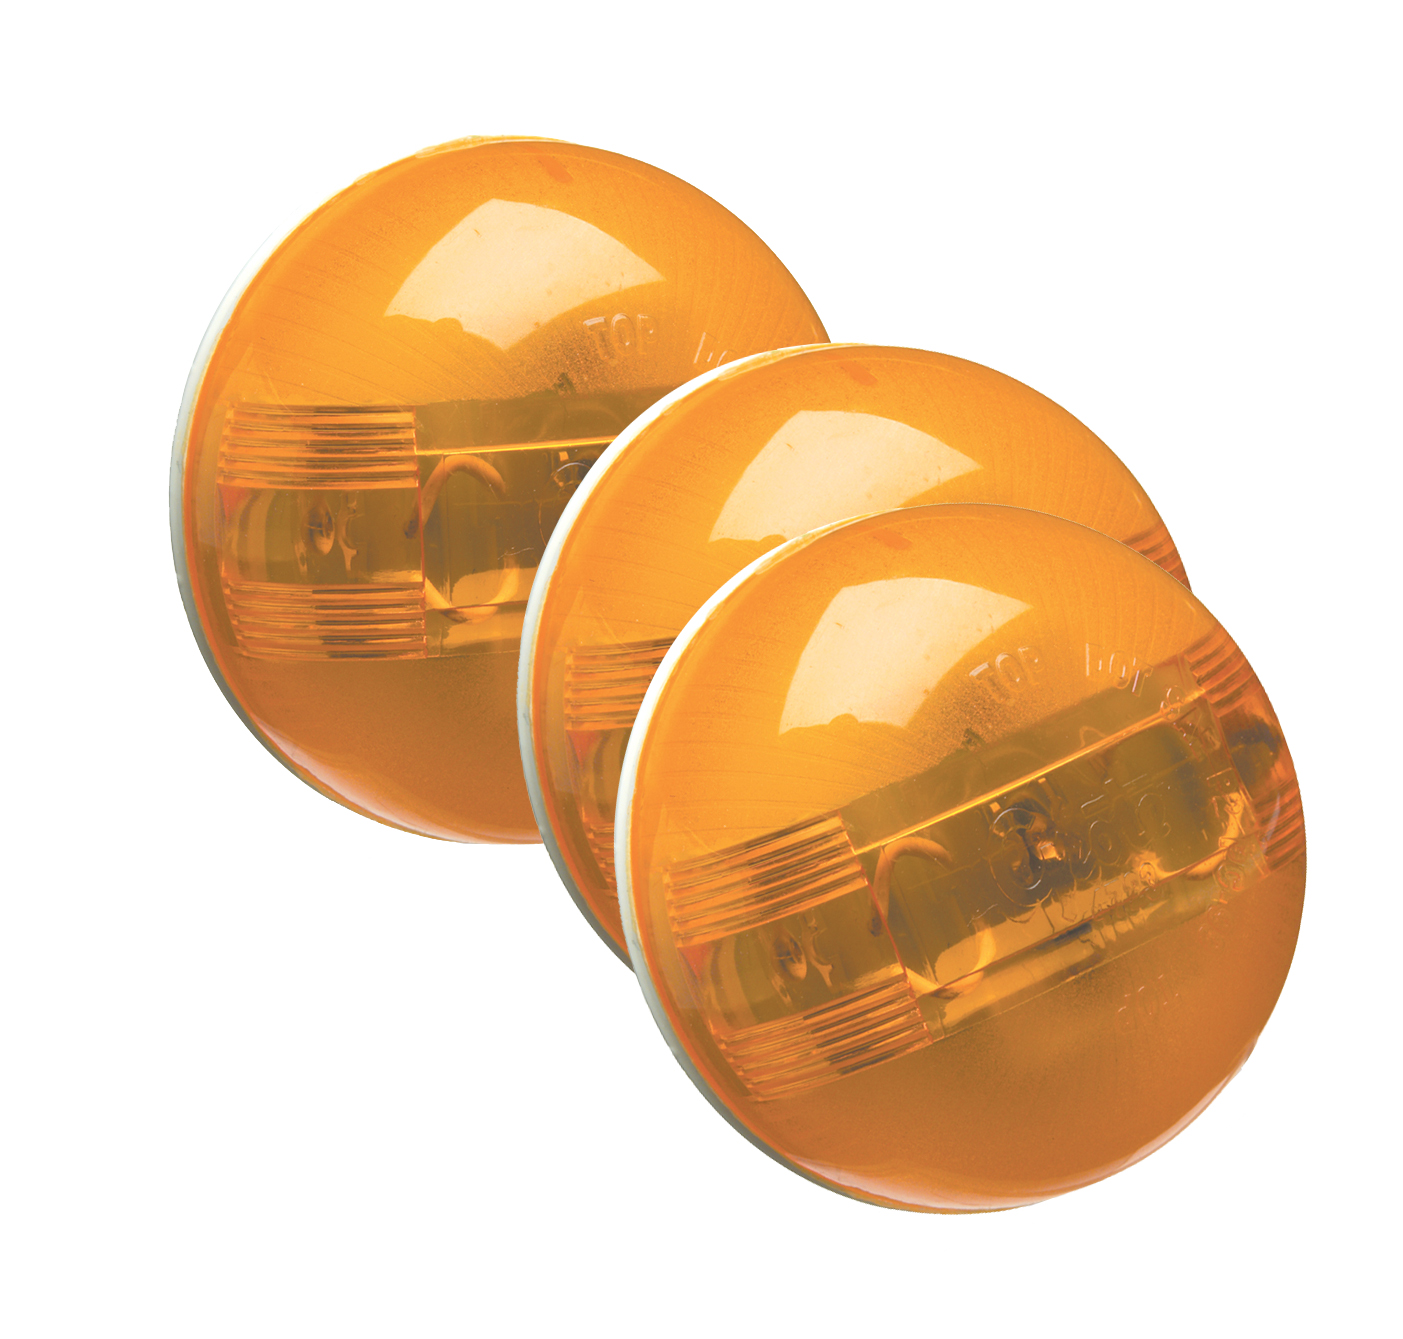 47233-3 – SuperNova® 2 1/2″ PC Rated, LED Clearance Marker Light, Yellow, Bulk Pack